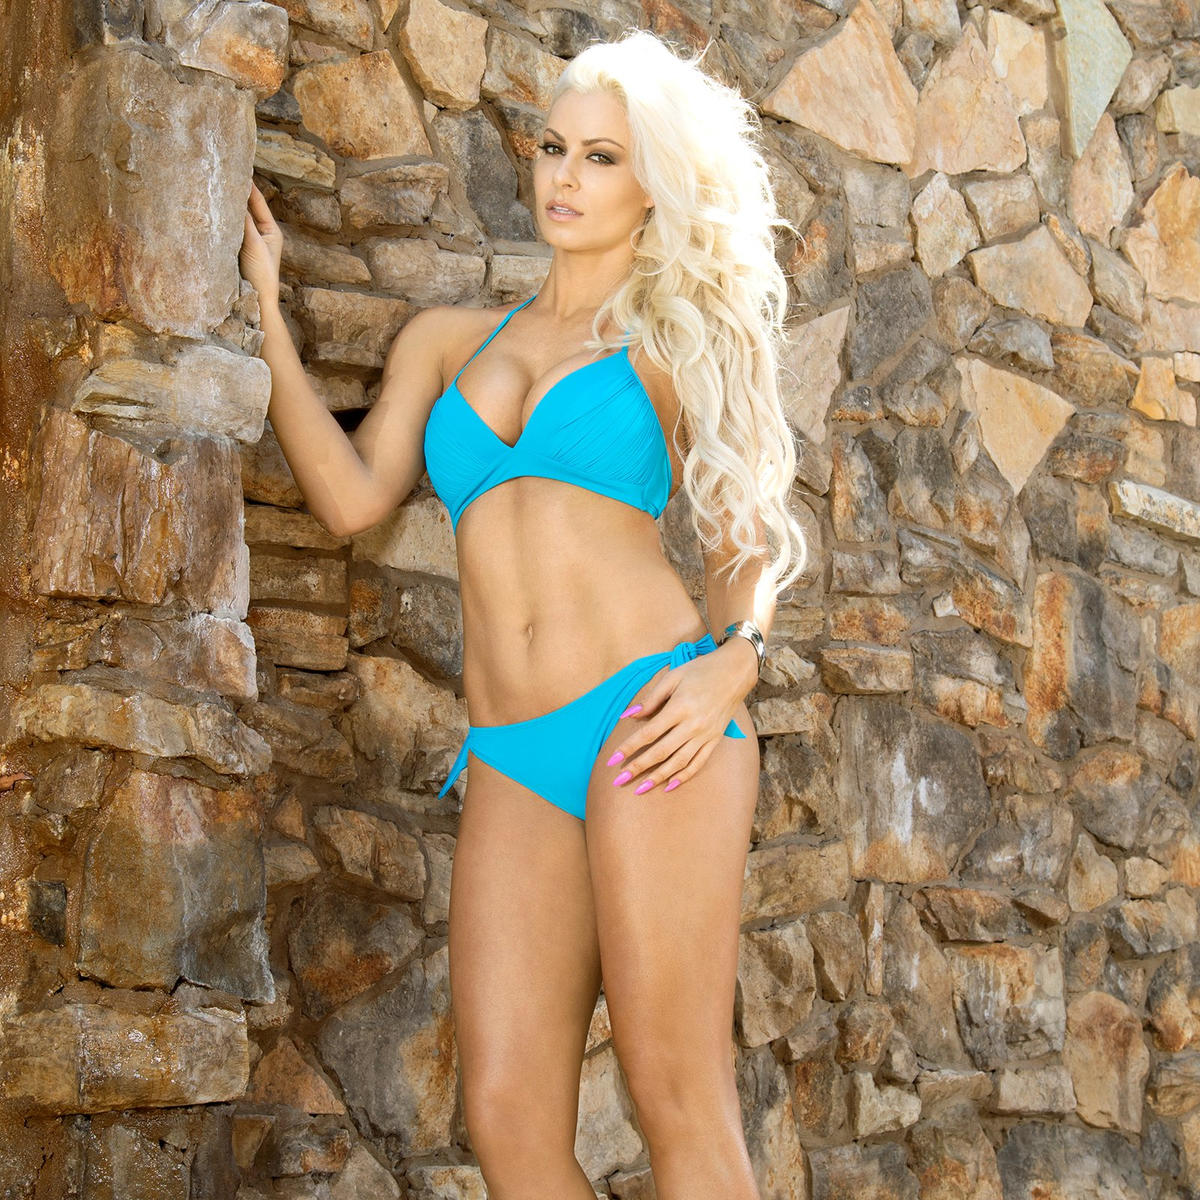 Happens. maryse ouellet bikini remarkable, very